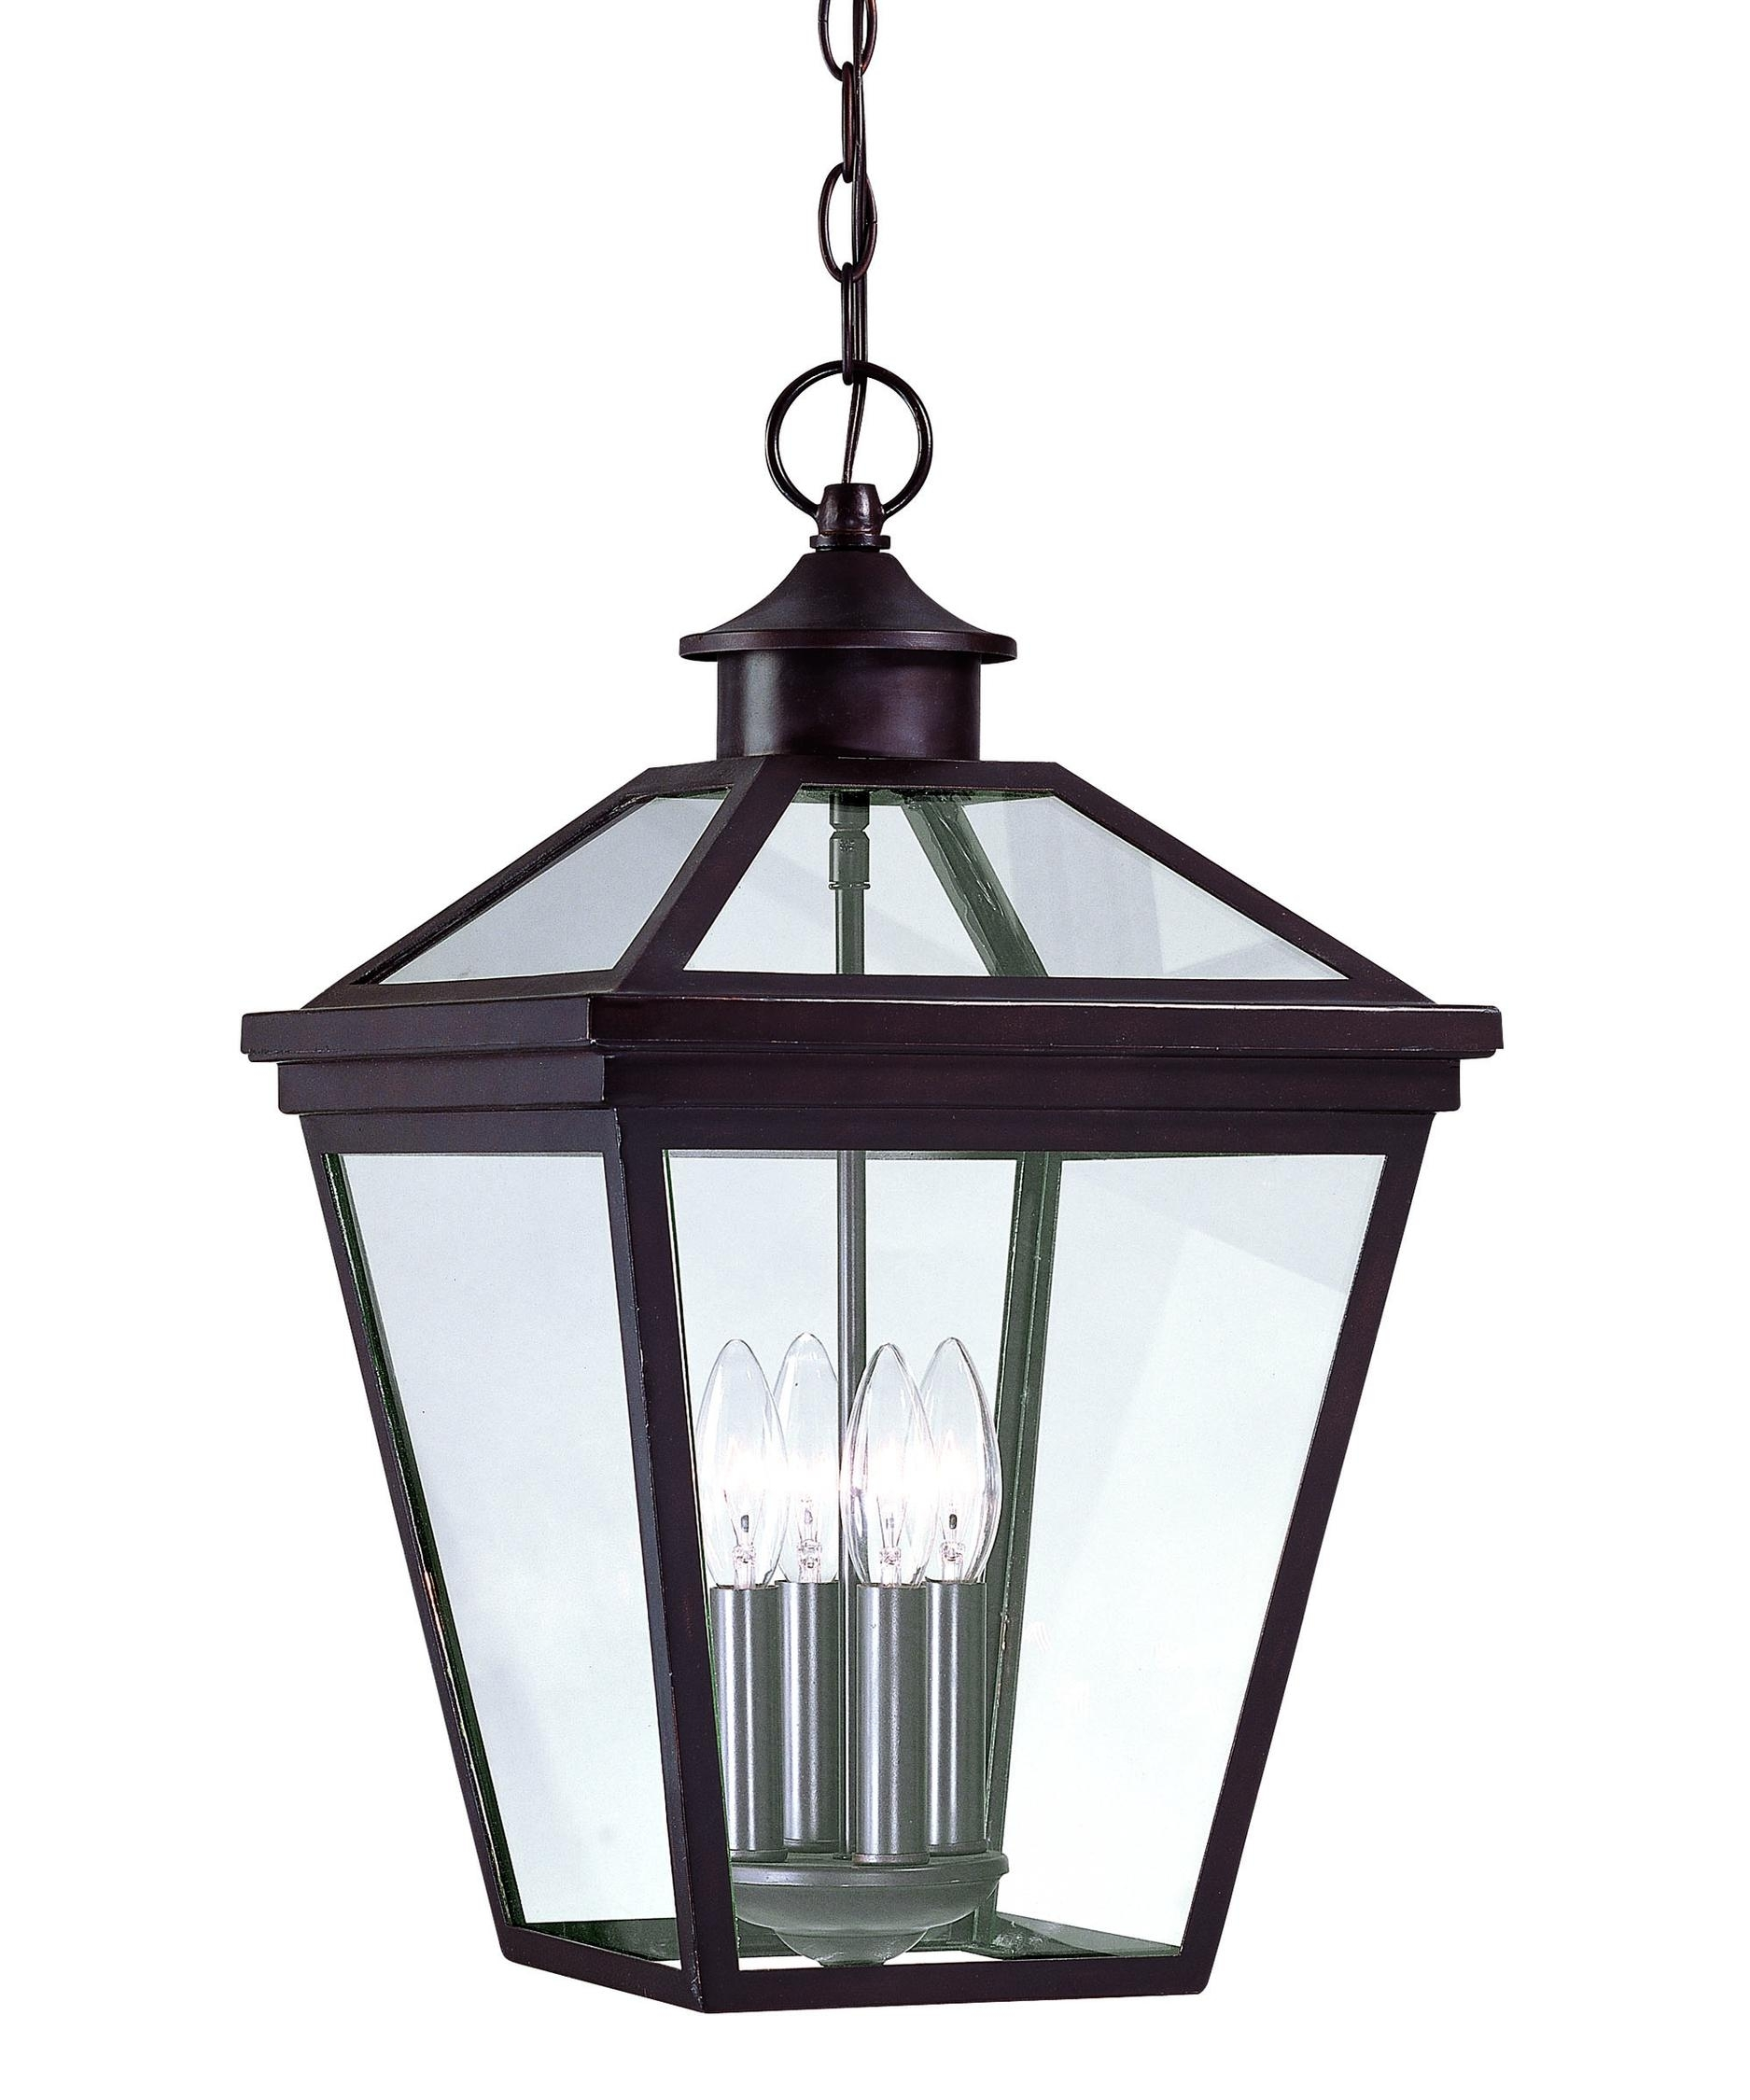 Furniture : Savoy House Ellijay Inch Wide Light Outdoor Hanging Intended For Outdoor Hanging Lanterns From Australia (#5 of 15)